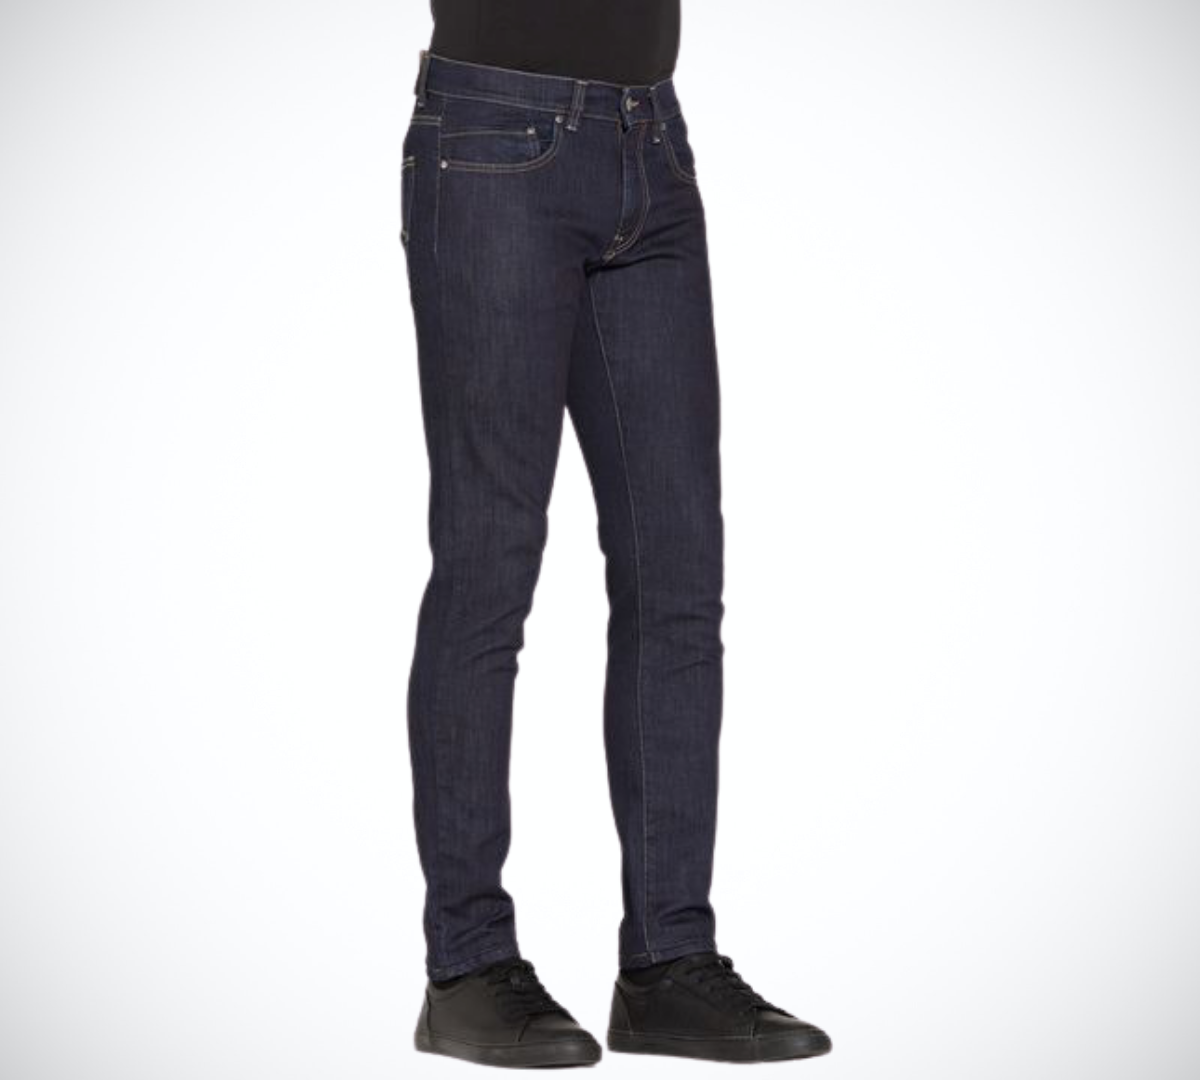 Jeans uomo stretch slim mod. 717 Carrera